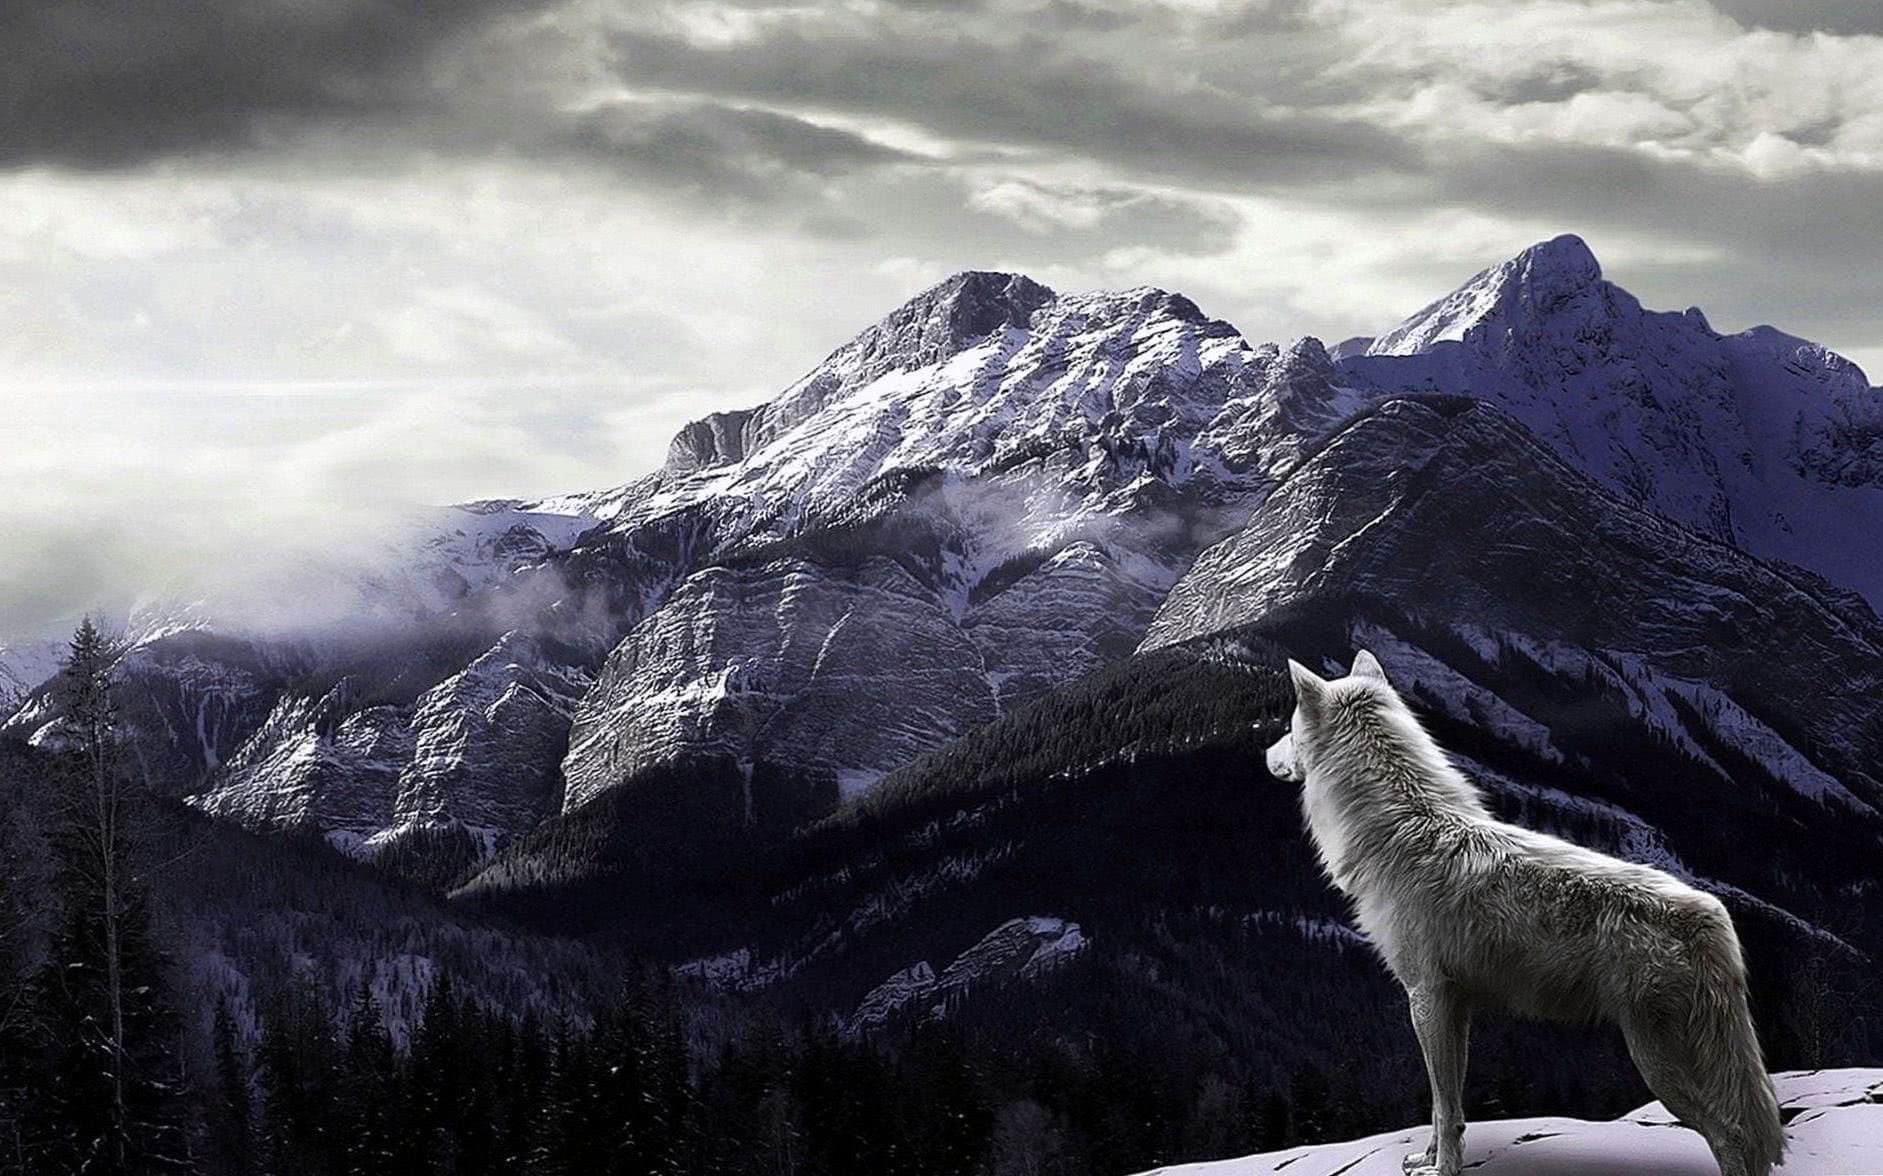 wolf wallpaper for iphone 72 images 26 wolf wallpapers.pro